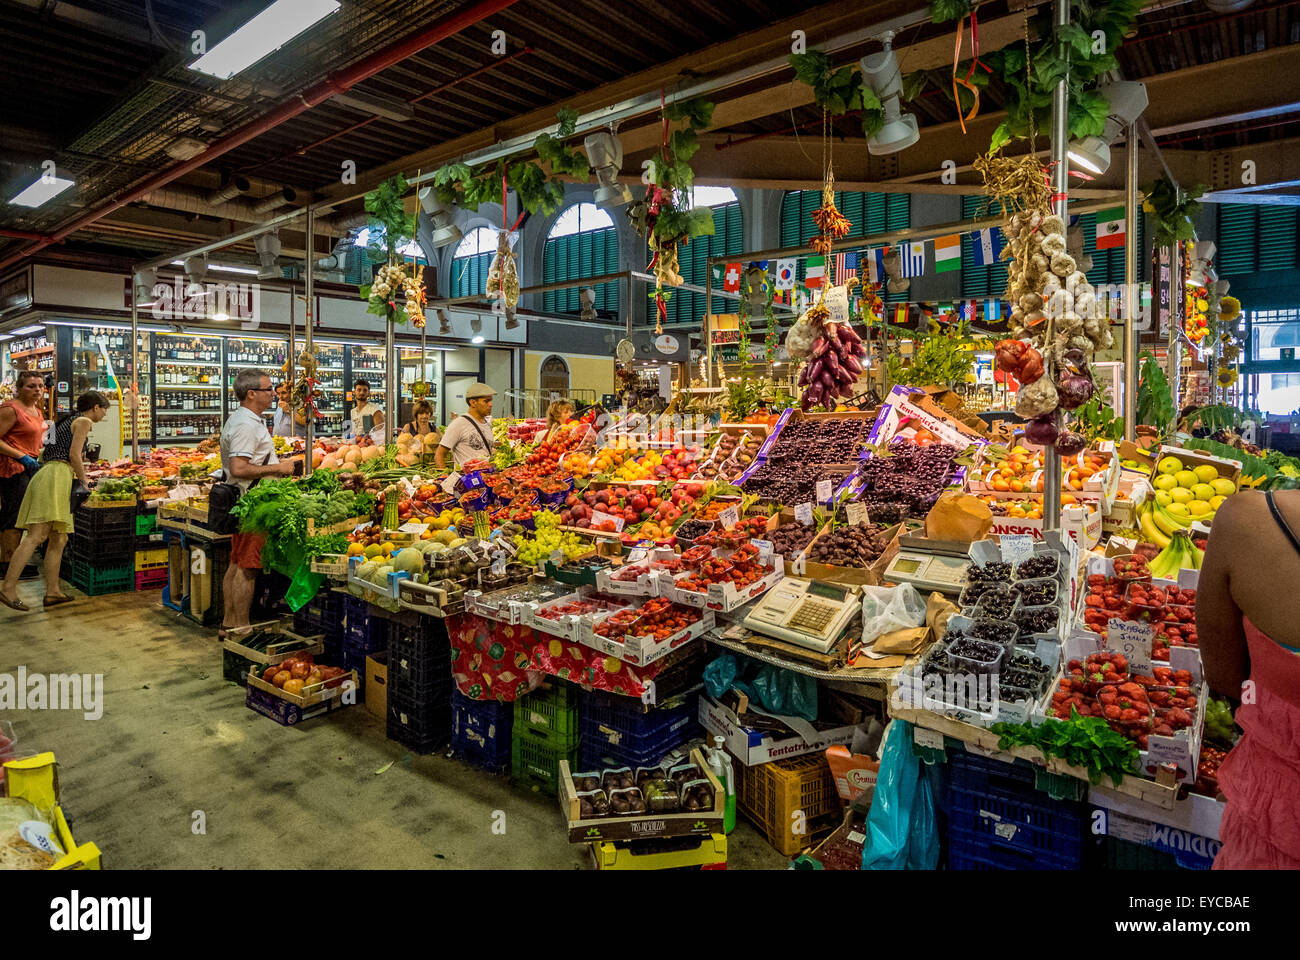 Mercata Centrale indoor market. Florence, Italy. - Stock Image